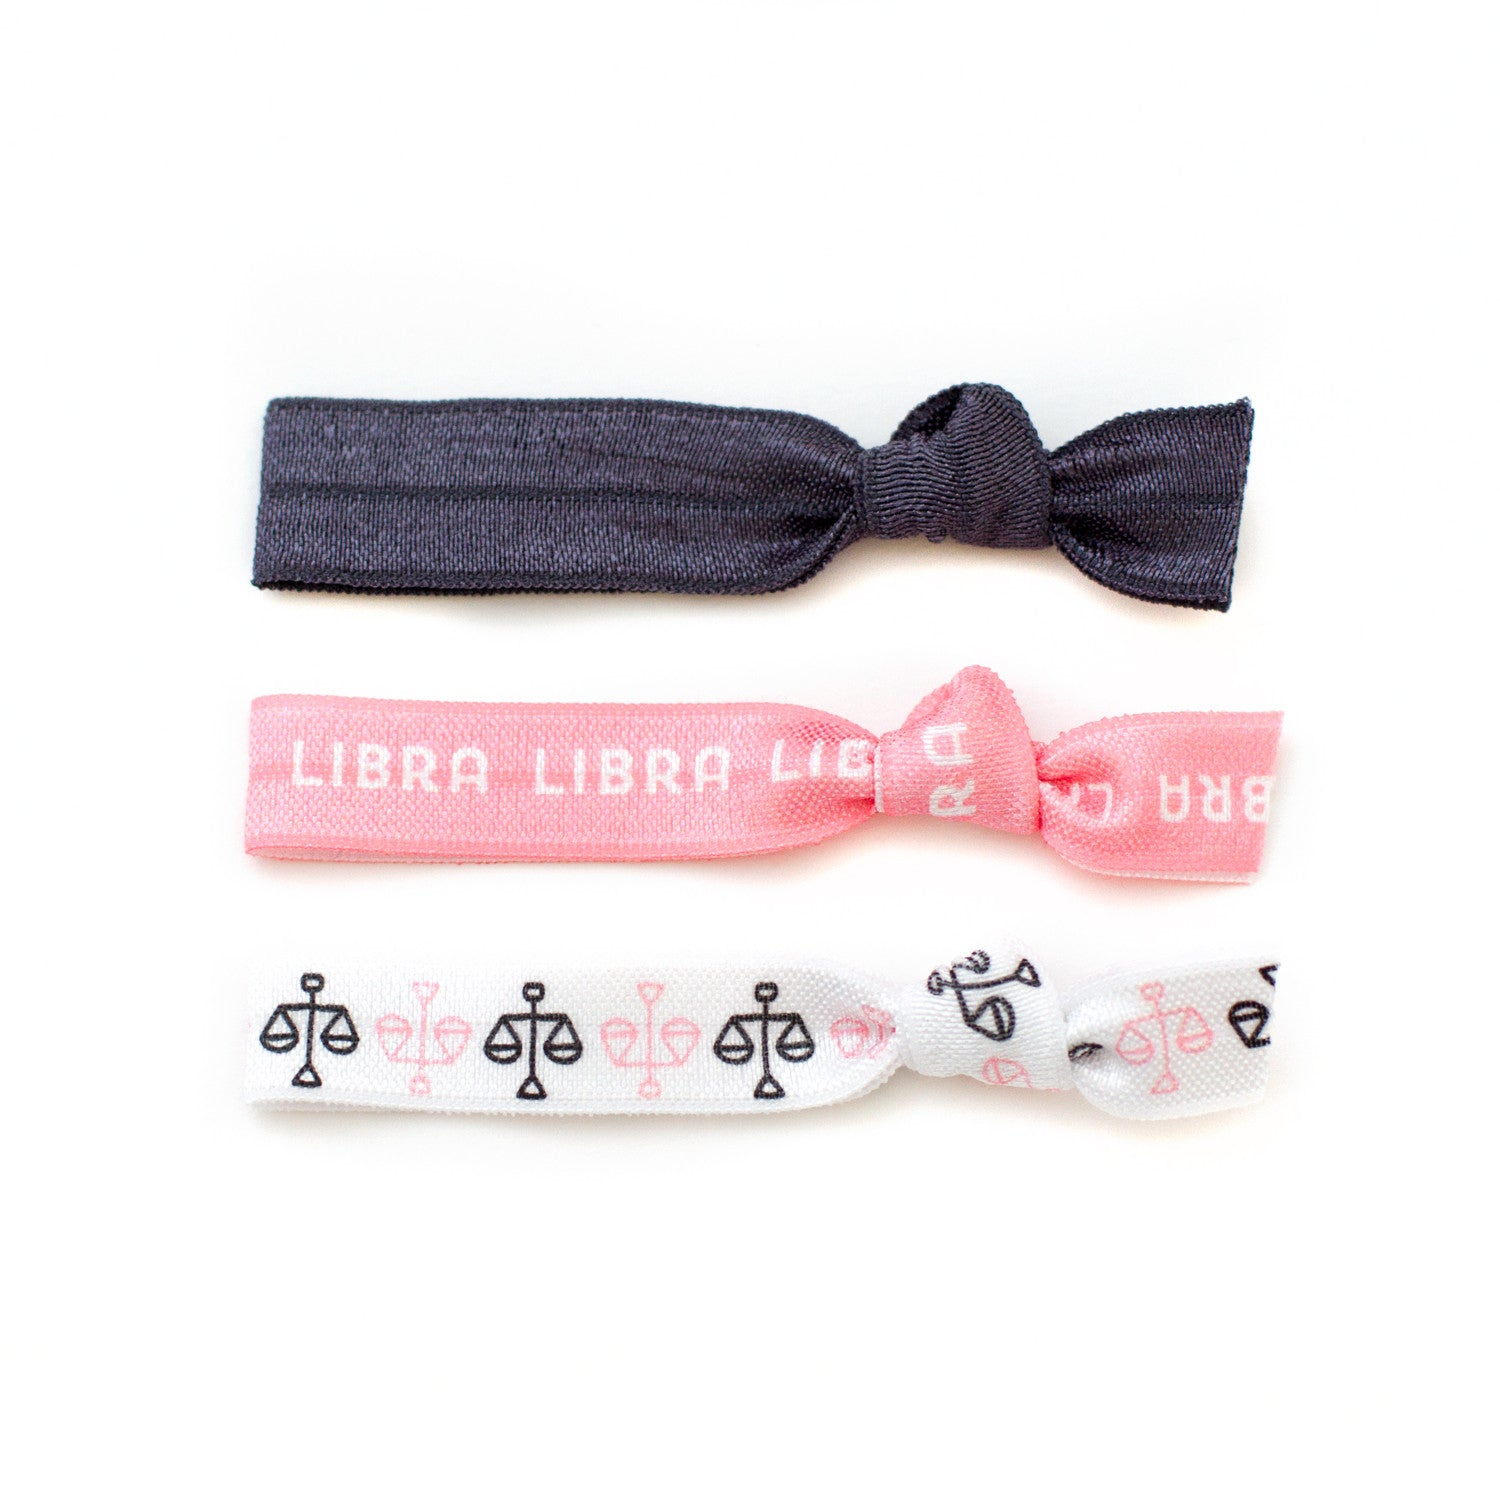 Libra Ponytail Holders Hair Ties